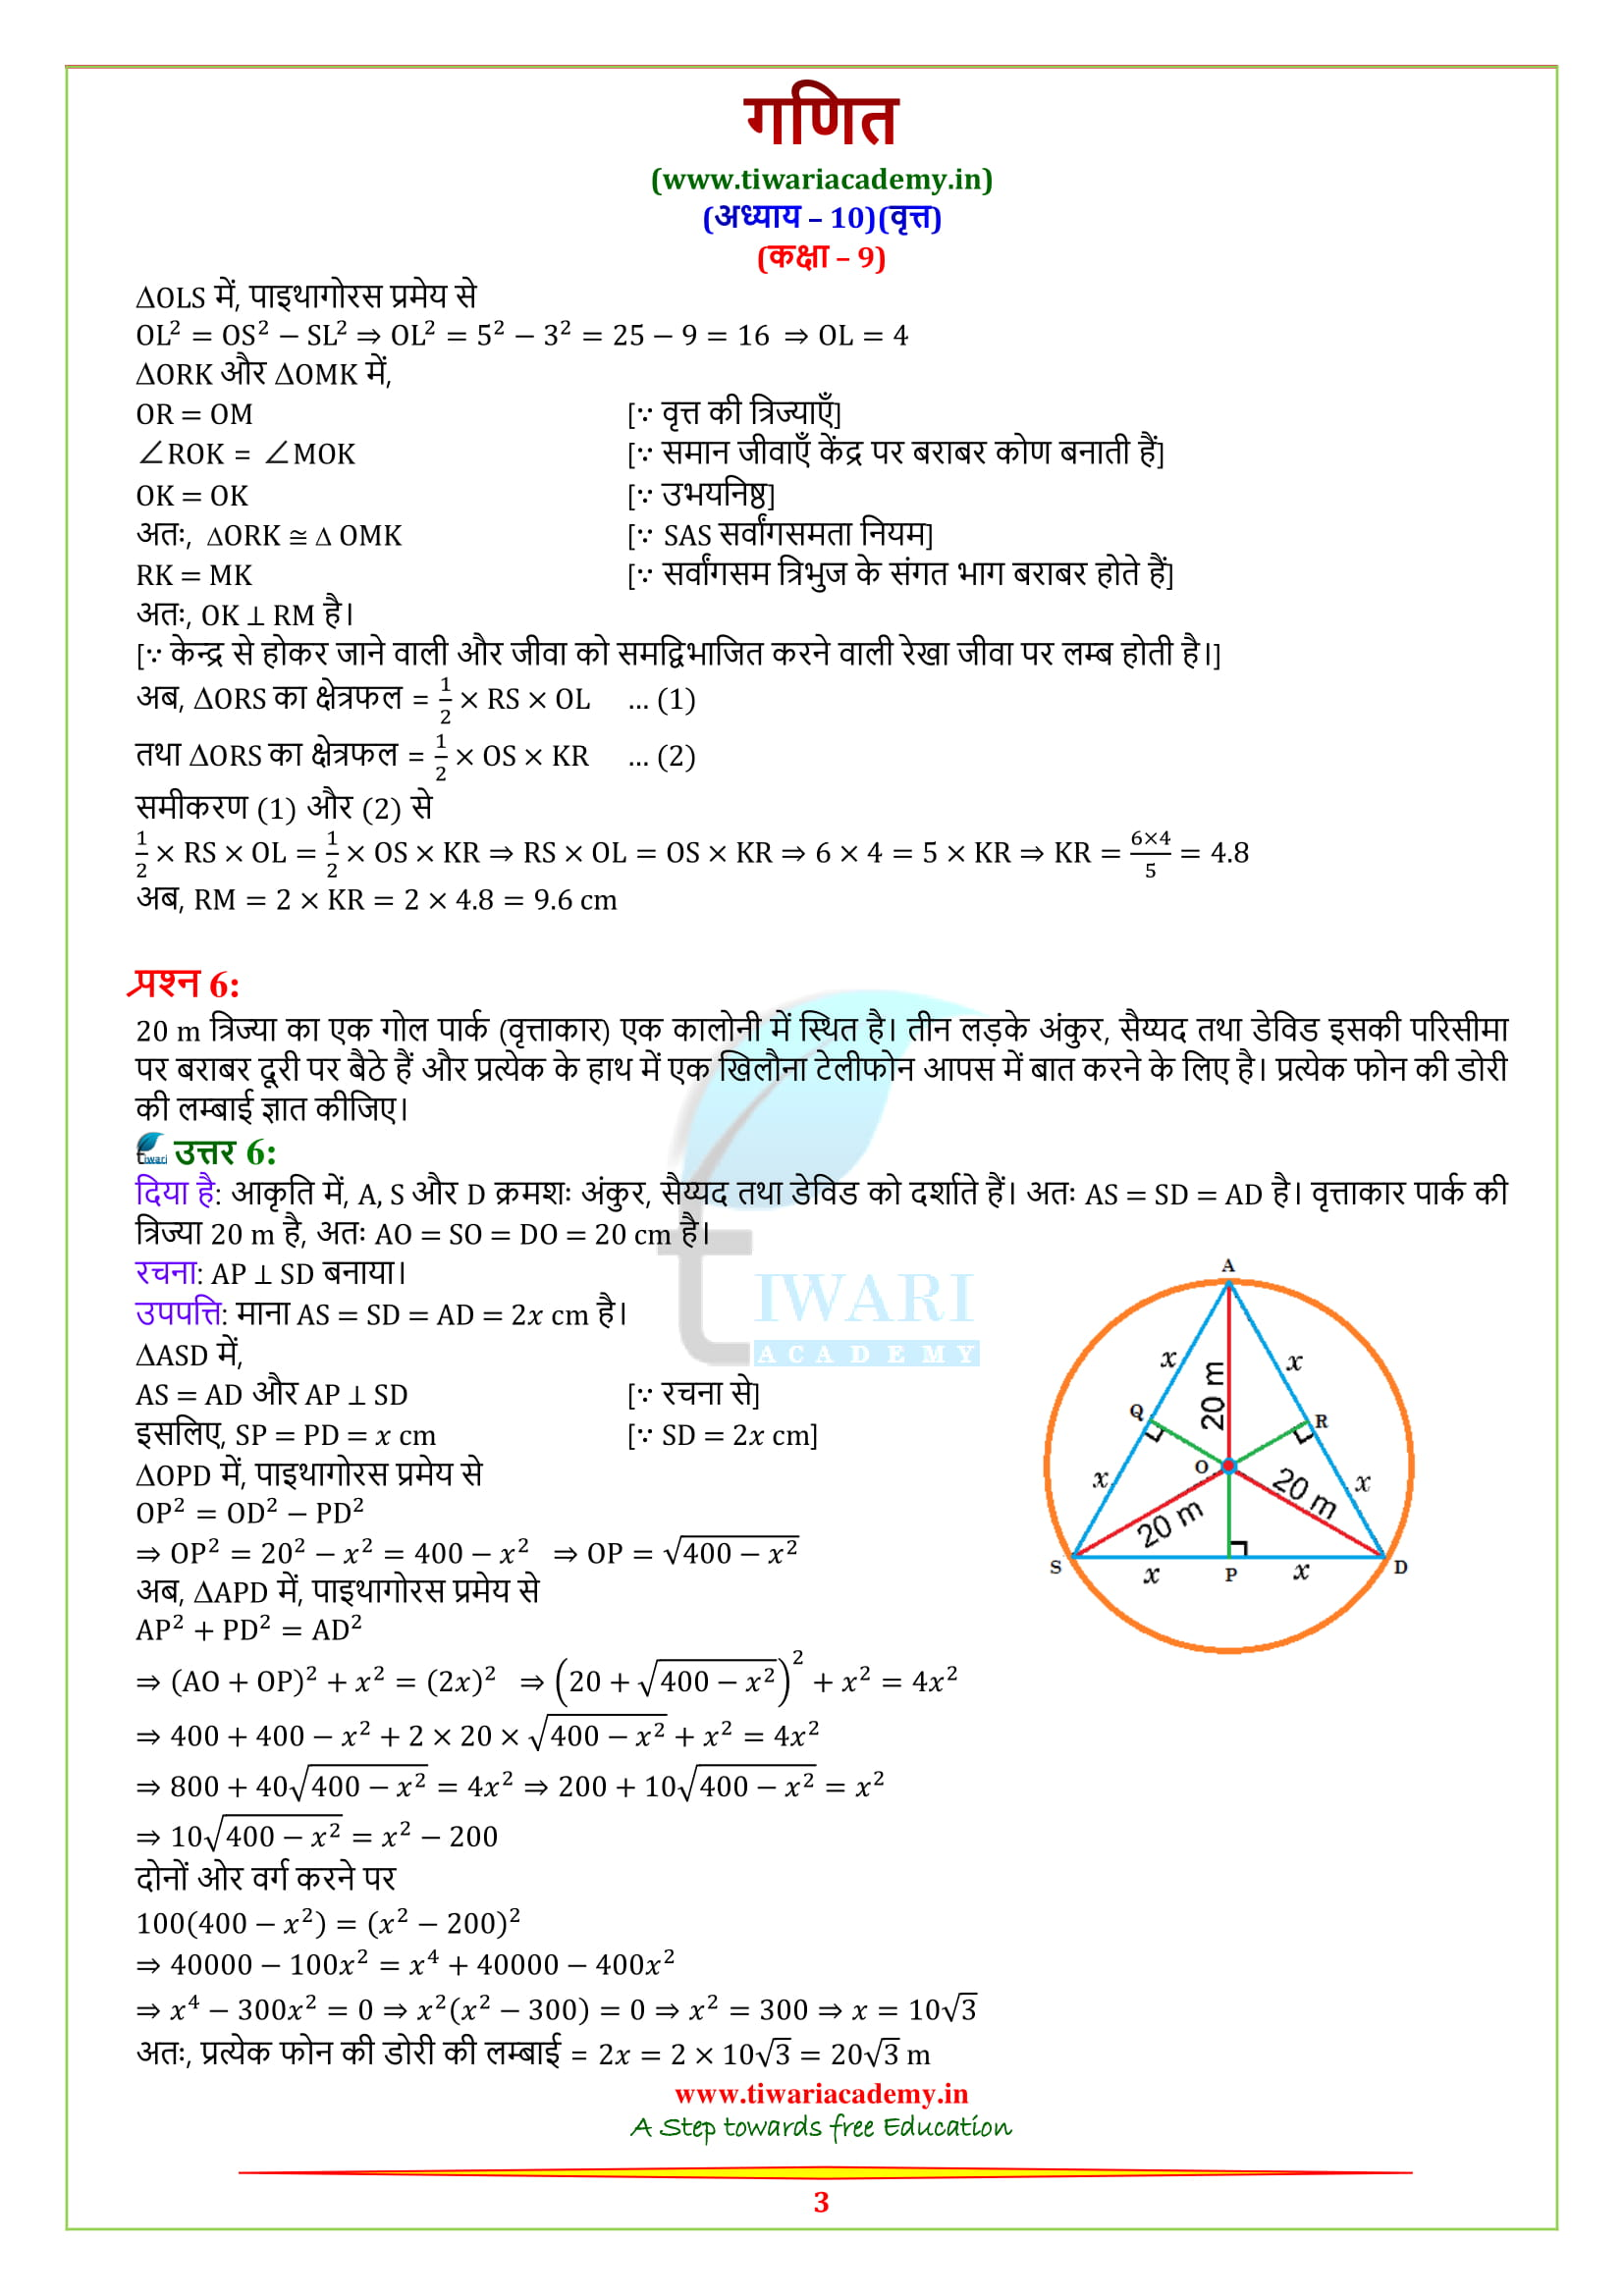 9 Maths Exercise 10.4 solutions in hindi for up and mp board